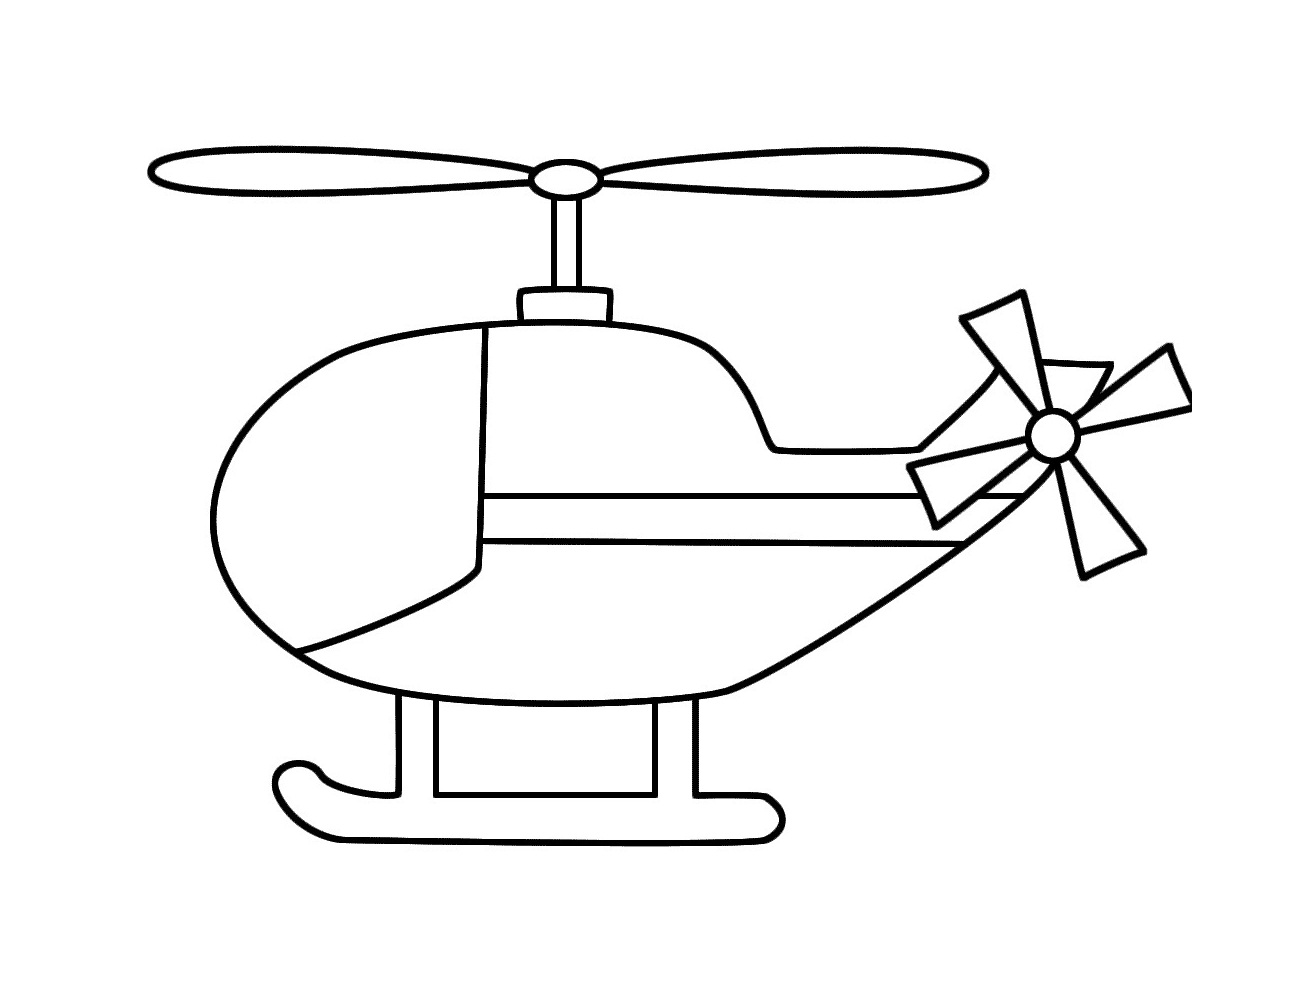 helicopter colouring pages 17 helicopter coloring pages all categories helicopters colouring helicopter pages